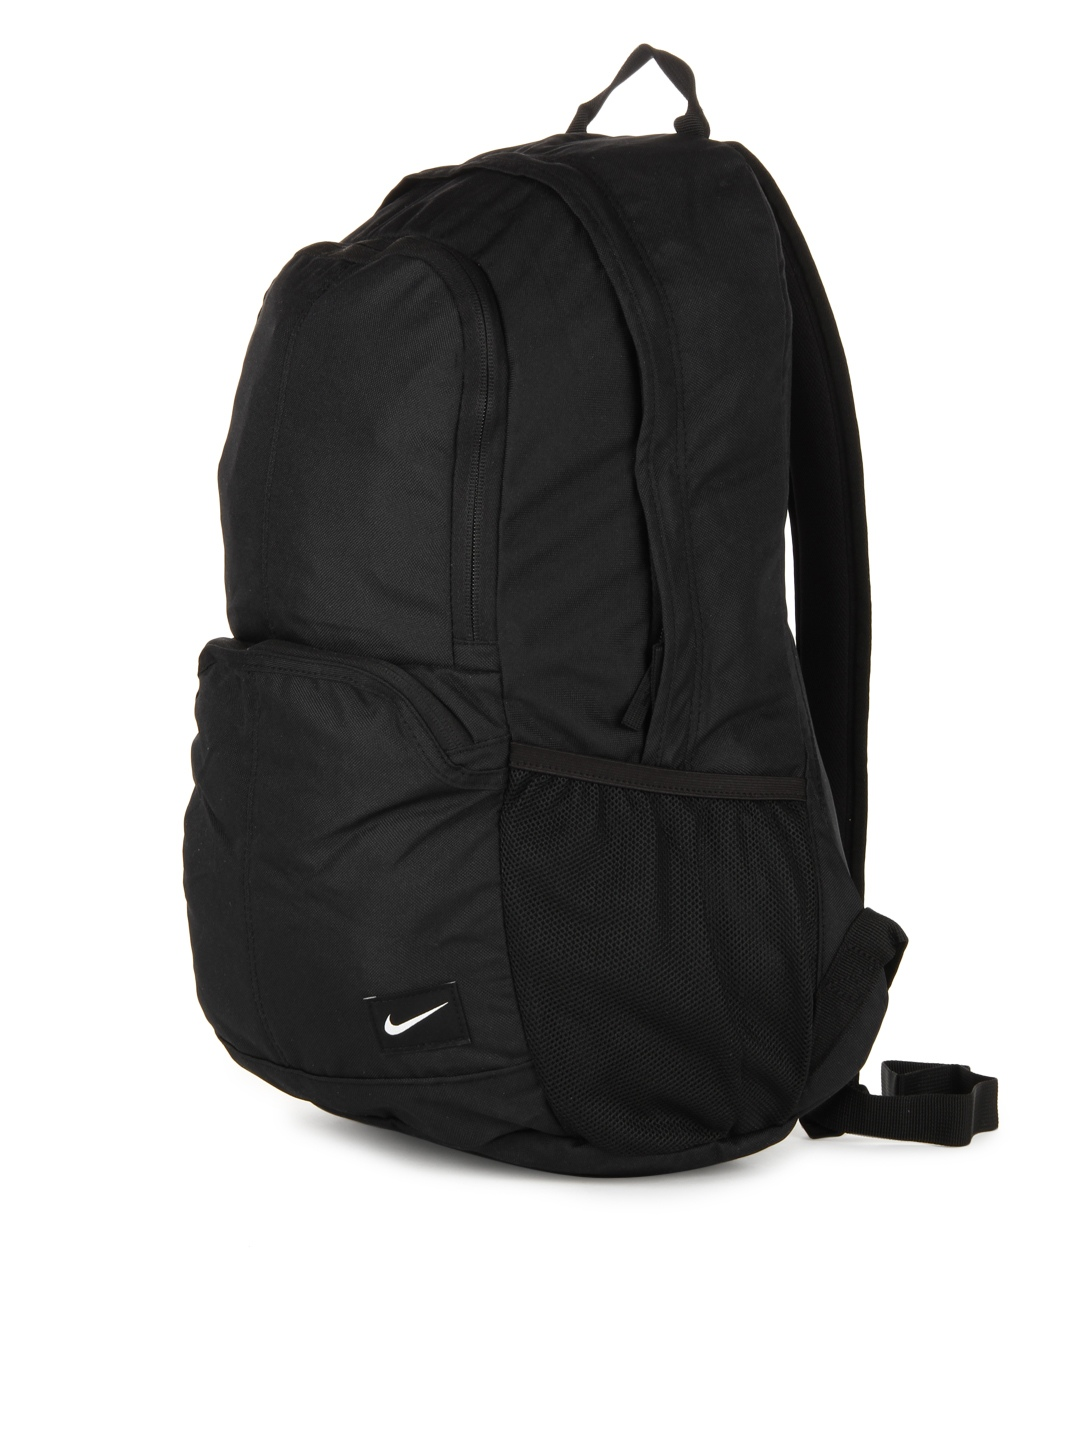 eefb4c0e63f9 Buy nike mens backpack   OFF76% Discounted